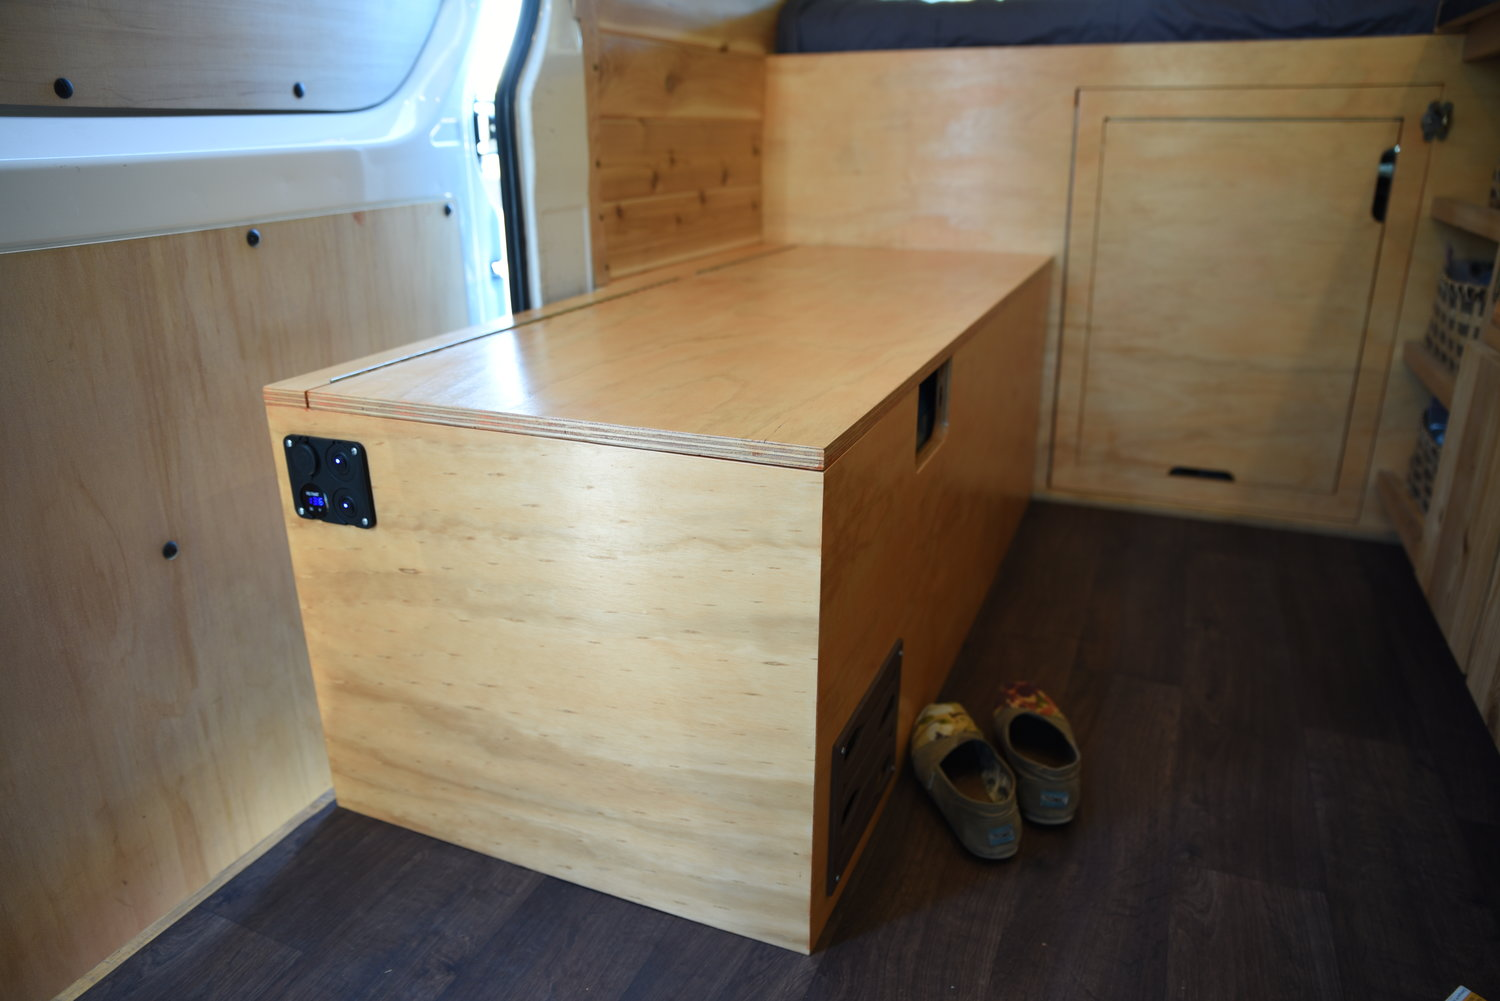 Super How We Built A Bench To Store Our Dometic Fridge In Our Gmtry Best Dining Table And Chair Ideas Images Gmtryco